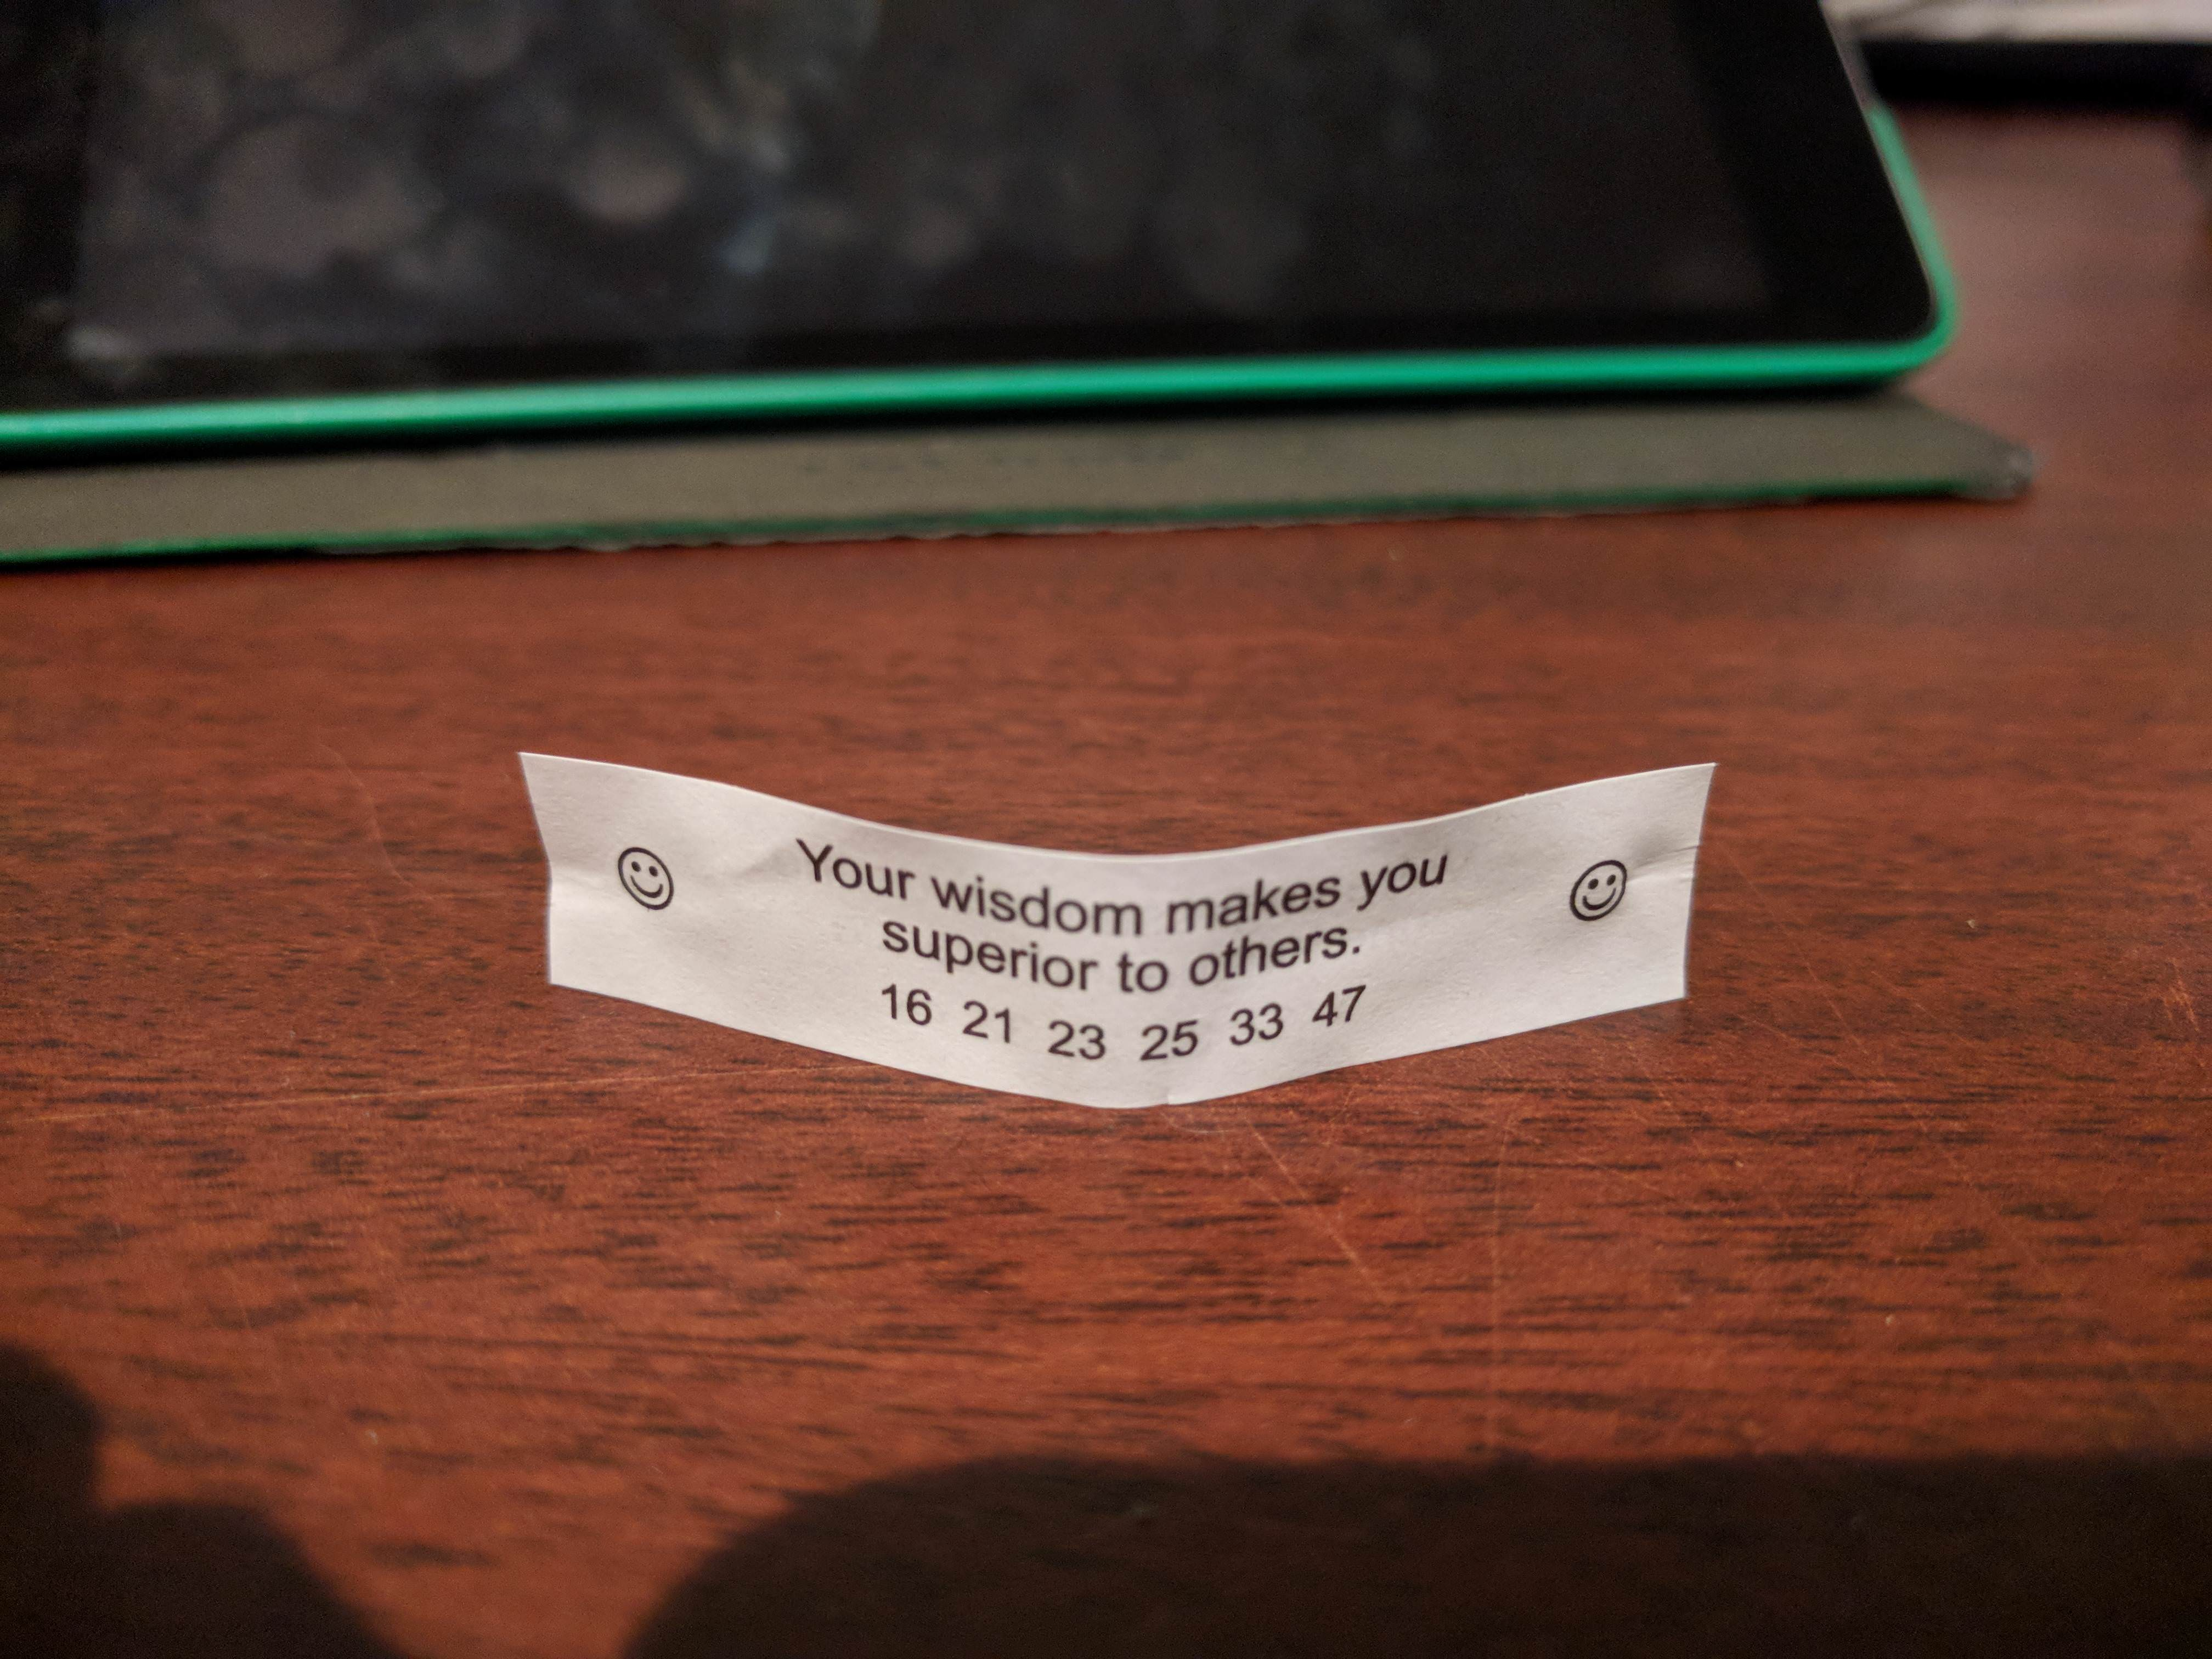 photo regarding Printable Funny Fortune Cookie Sayings known as 30 Hilarious Messages Found out Inside Fortune Cookies InspireMore